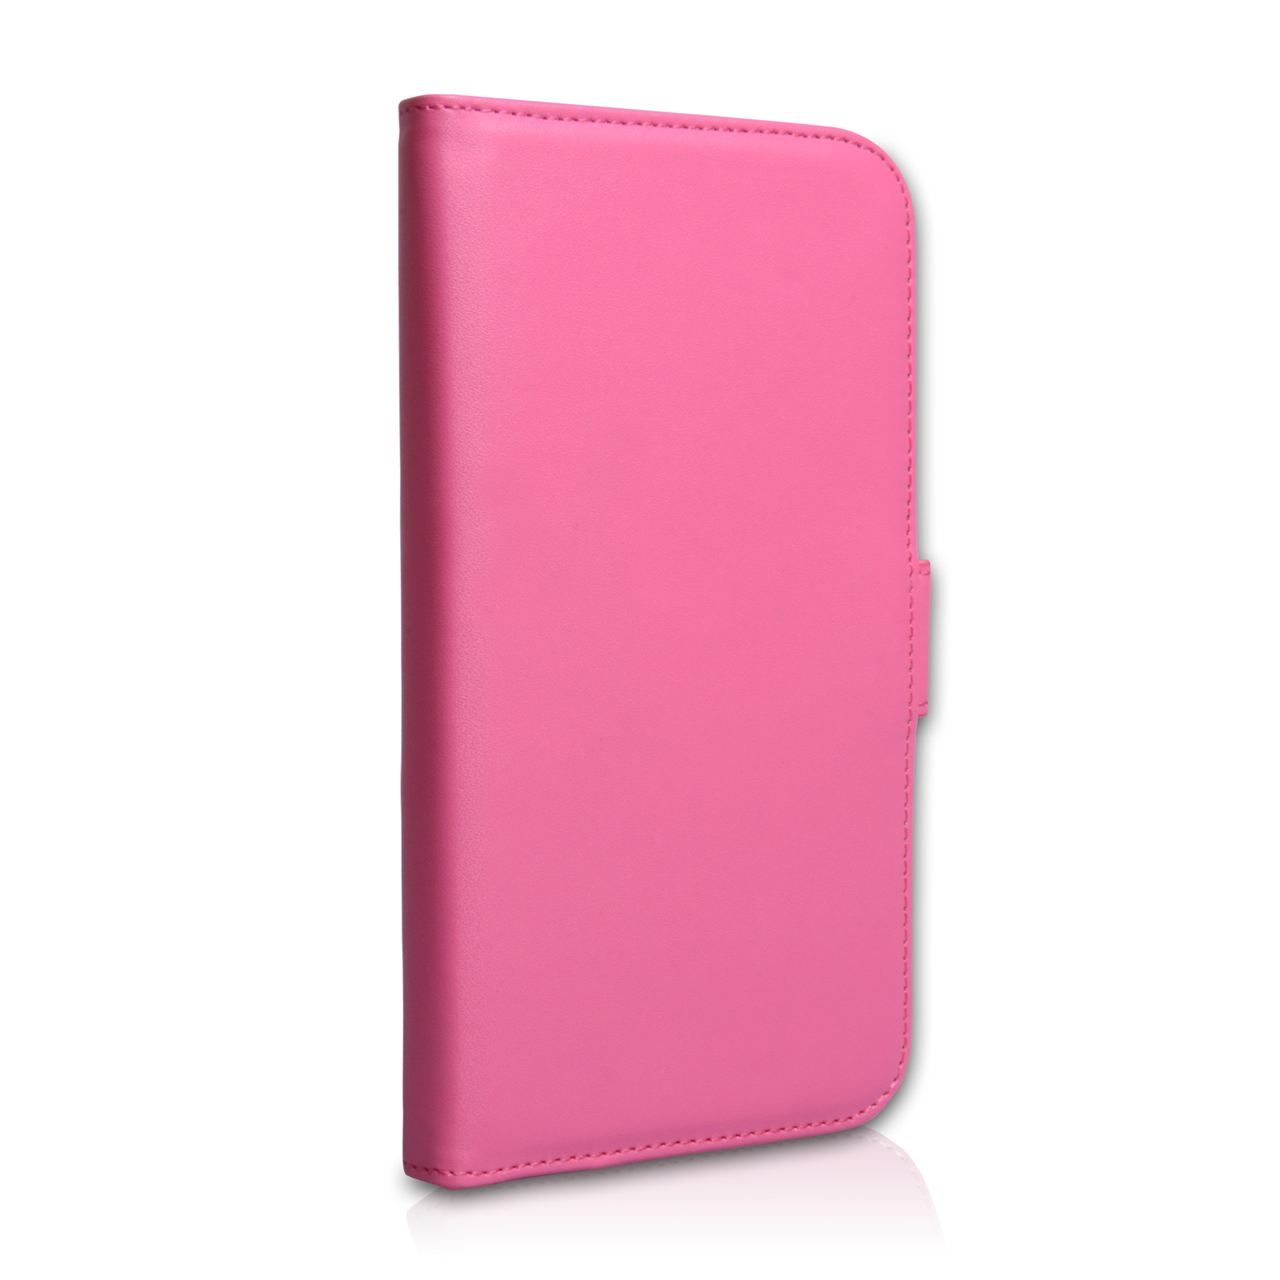 YouSave Samsung Galaxy Note 3 Leather Effect Wallet Case - Hot Pink